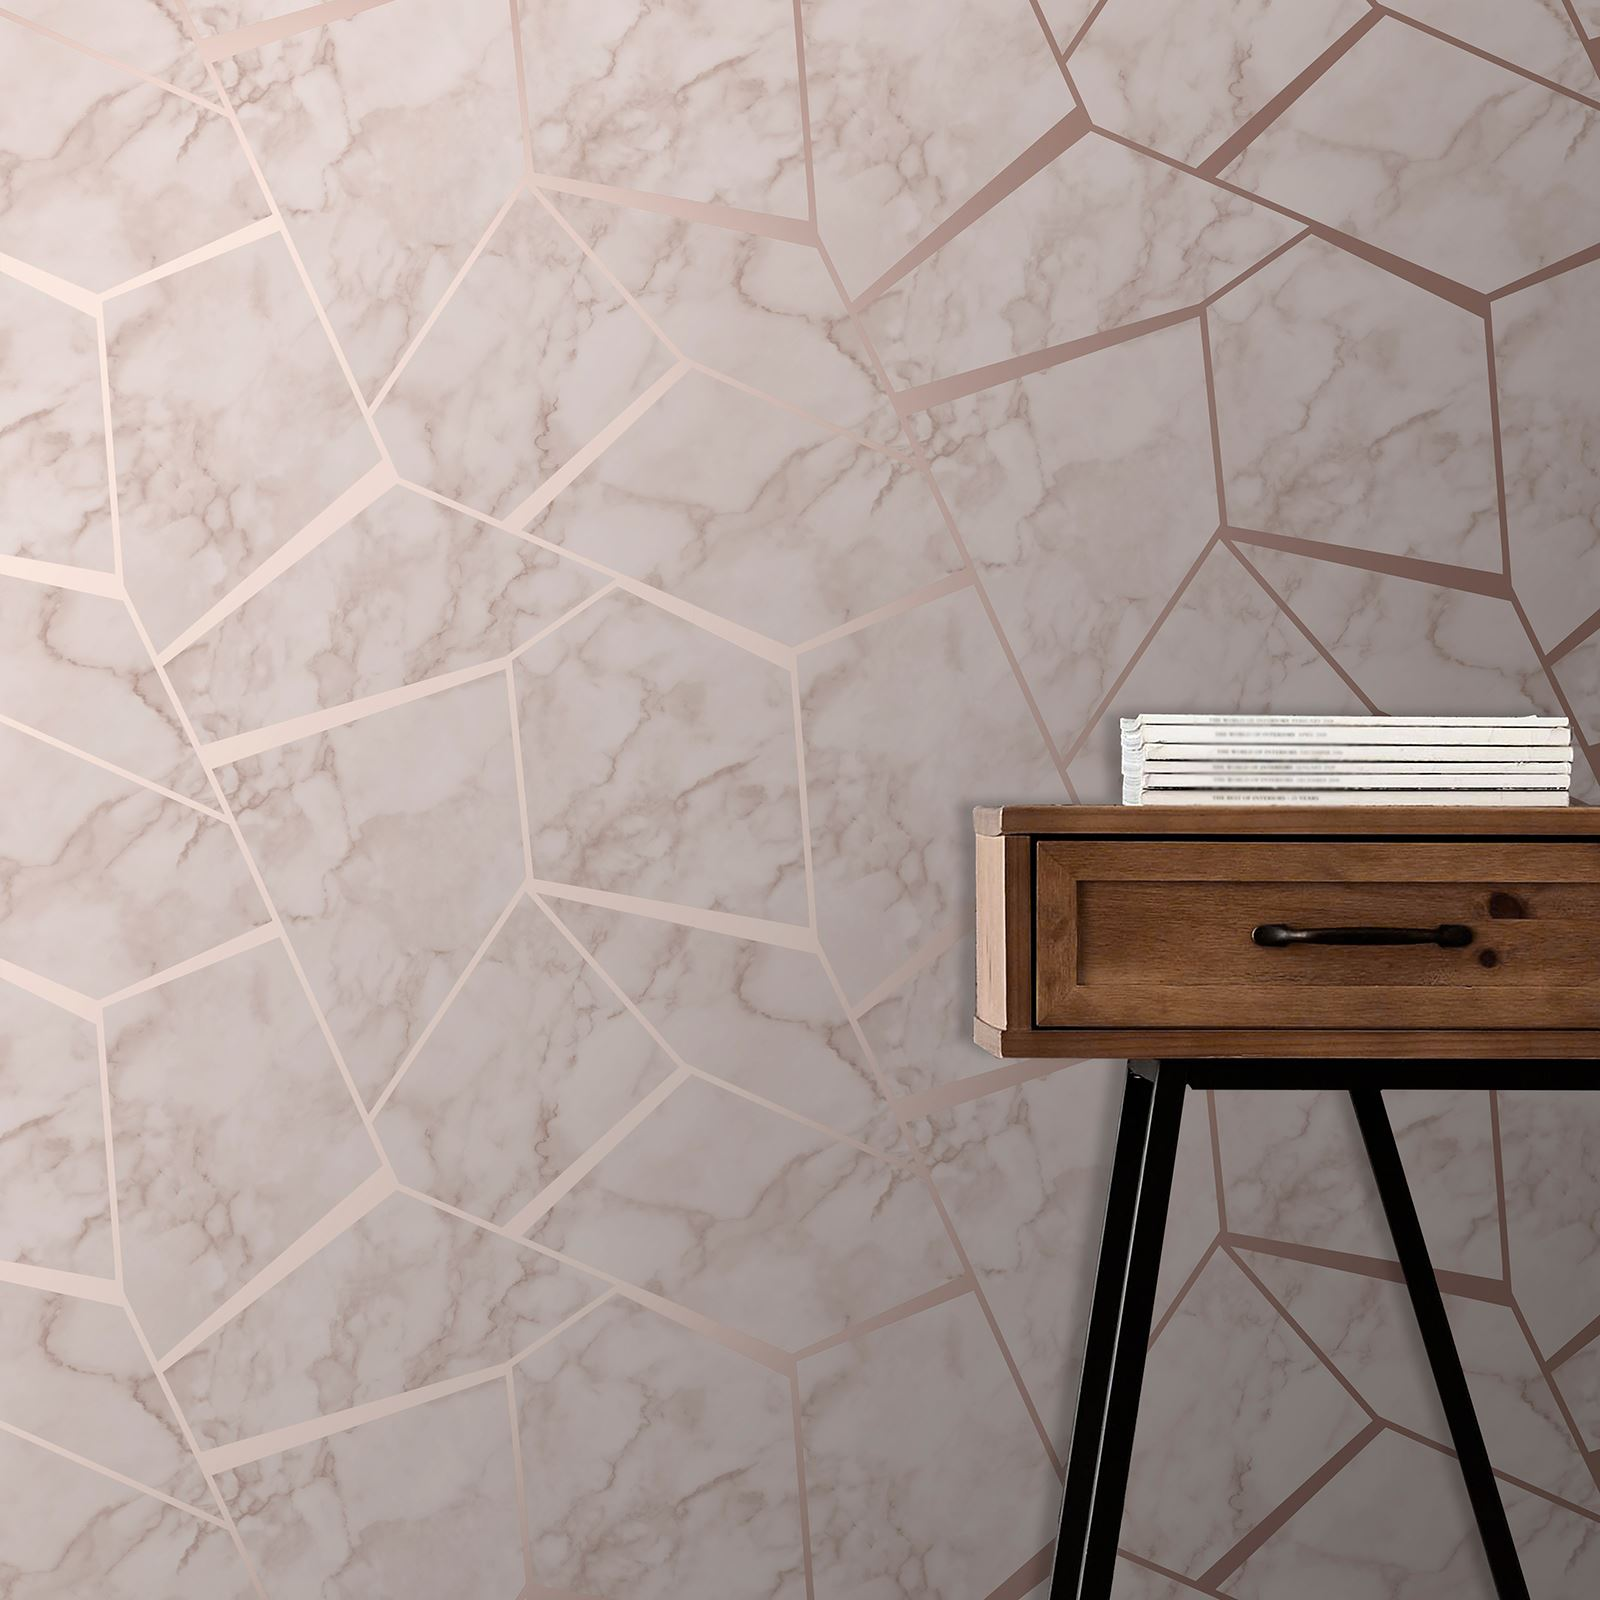 FINE-DECOR-METALLIC-GEOMETRIC-PLAIN-MARBLE-WALLPAPER-ROSE-GOLD-COPPER-SILVER thumbnail 9